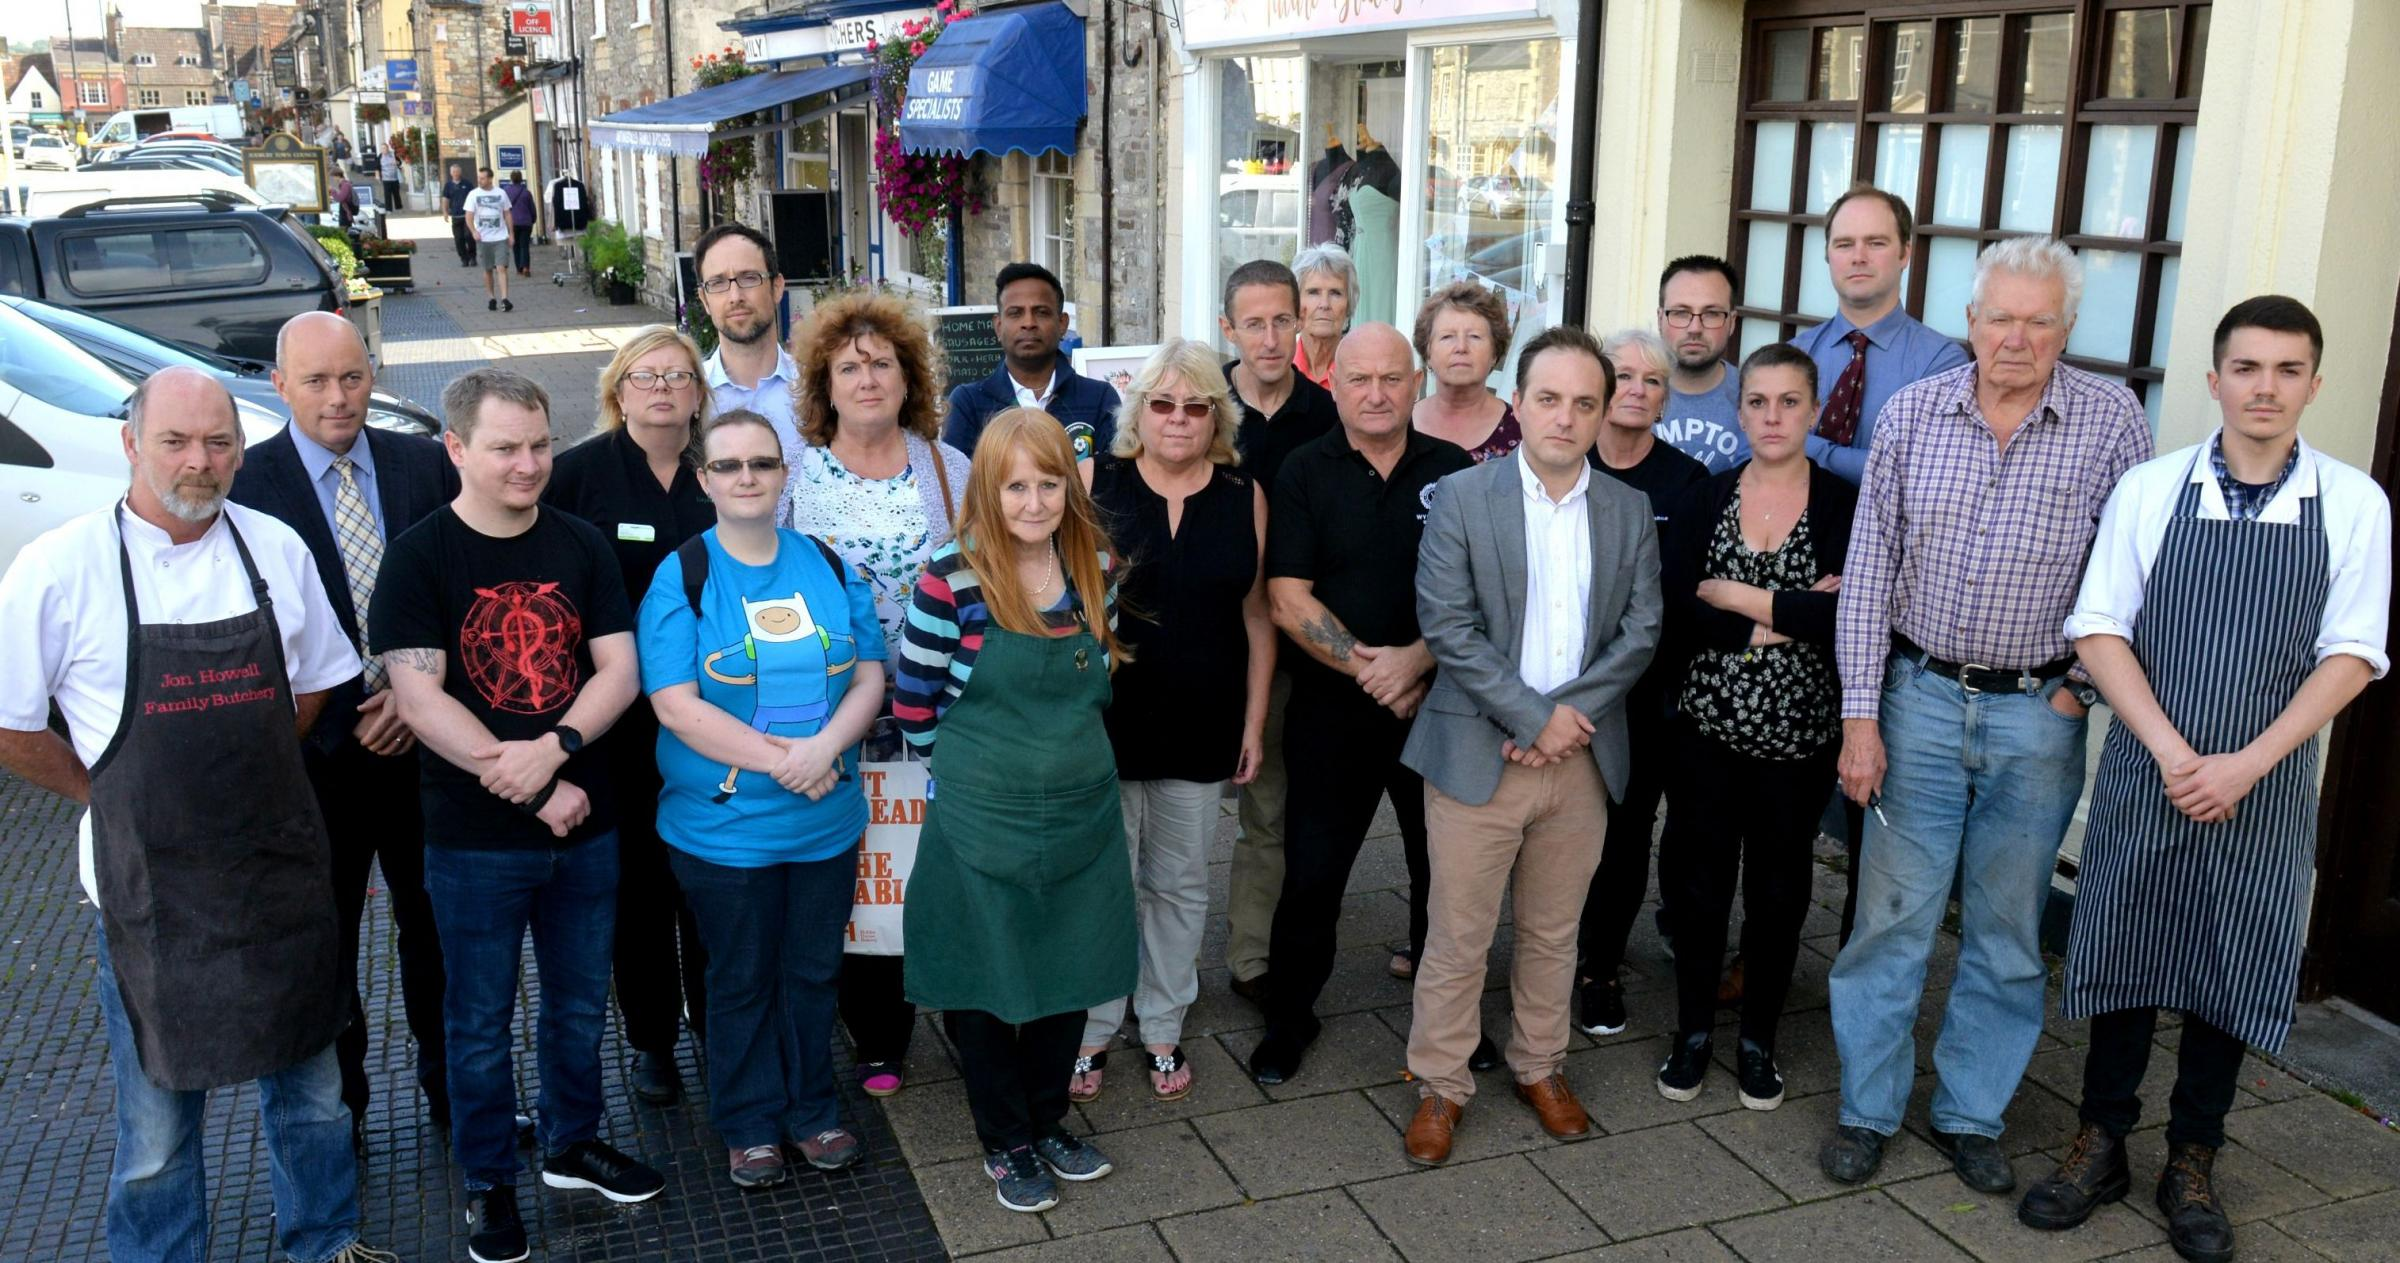 Chipping Sodbury business owners and traders are unhappy at the lack of a cash machine in the town